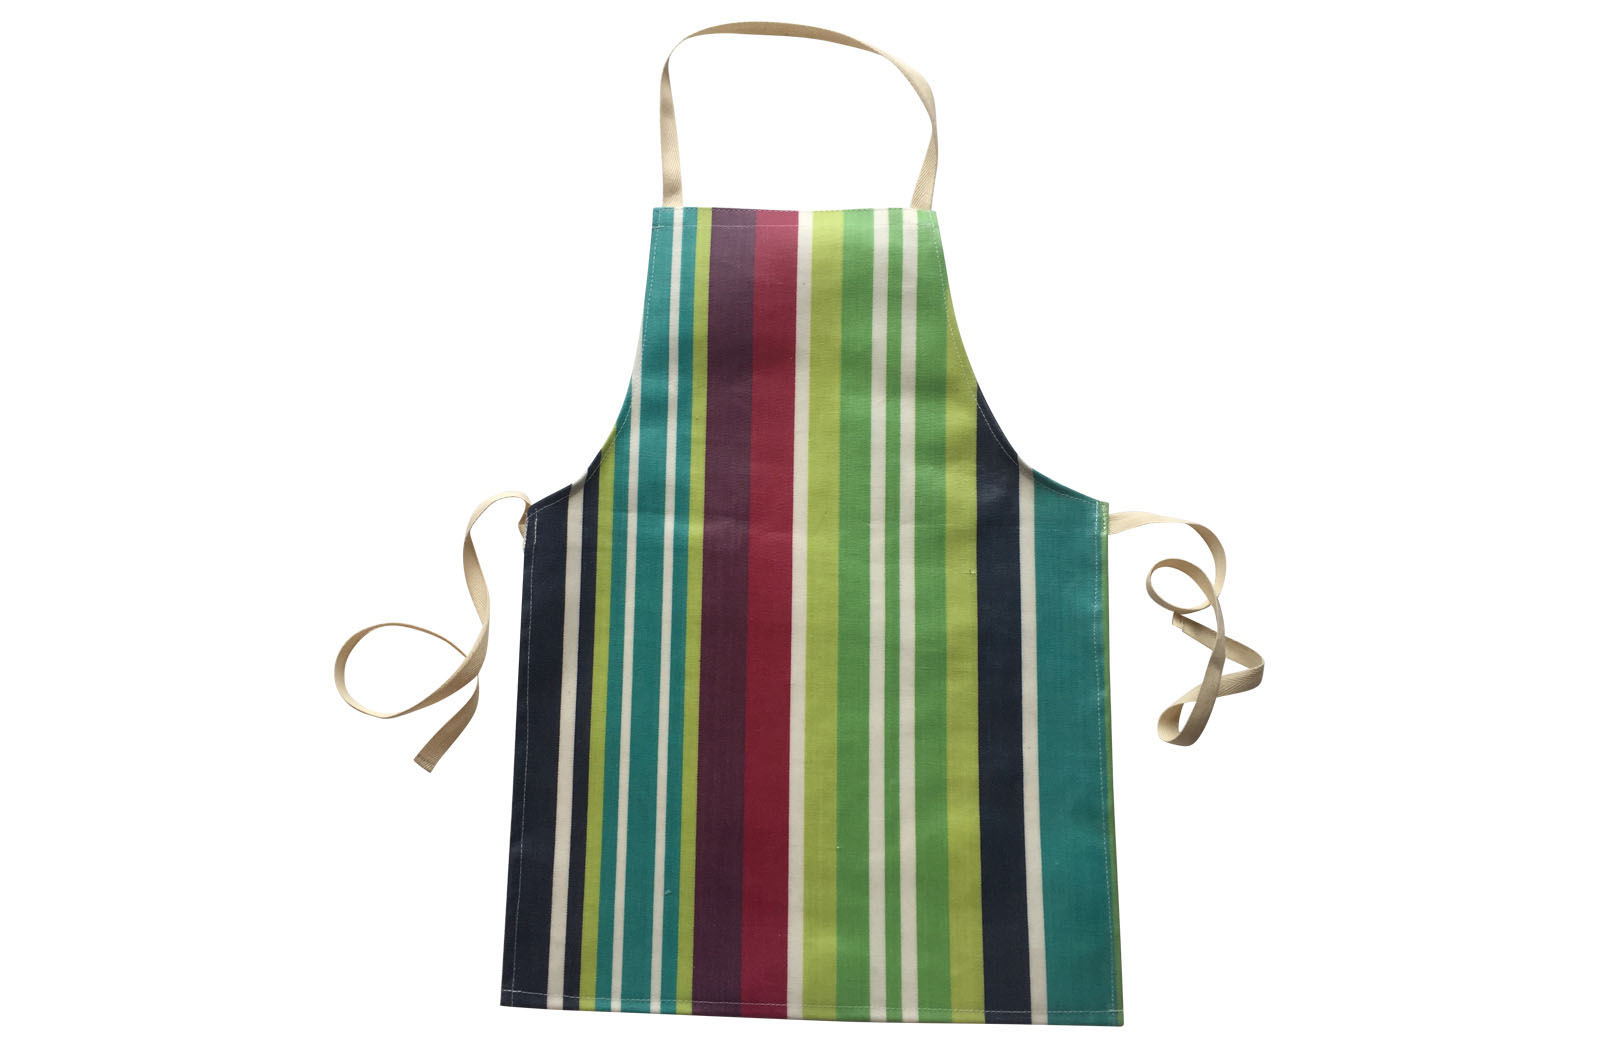 Tugowar Oilcloth Toddler Apron in navy, turquoise, lime stripes